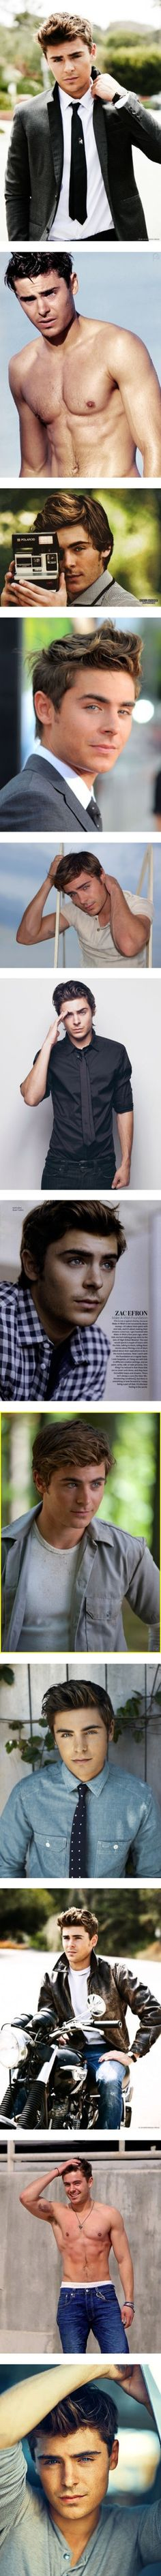 Zac Effron :) I would SOOOOO cast him as JAMES DEAN. He's the James Dean of this Century.